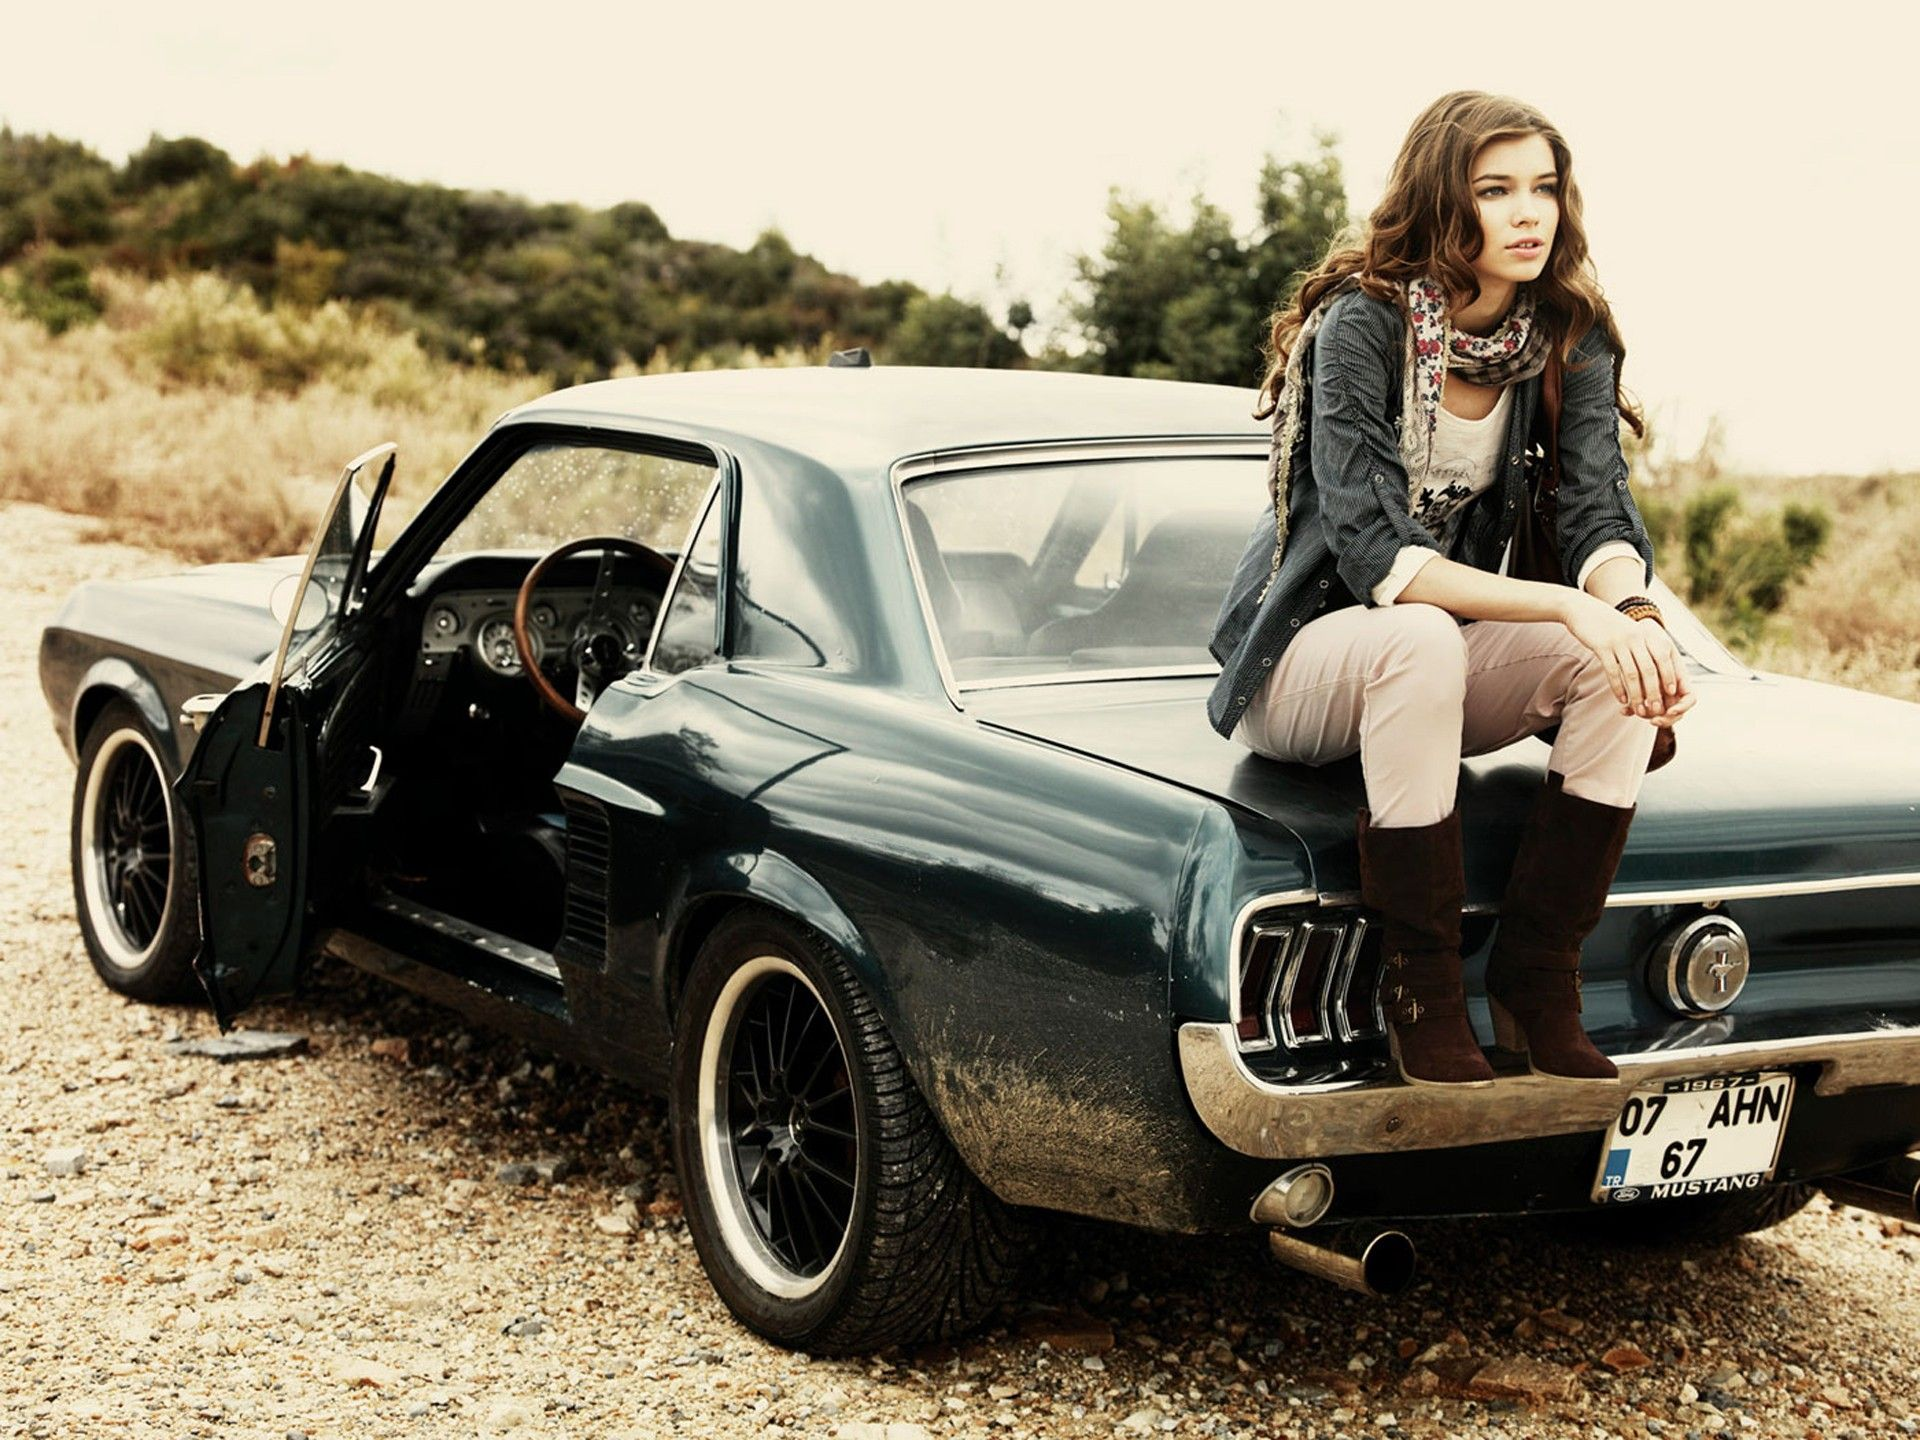 Vintage Photography Muscle Cars Turkey Ford Mustang Normal